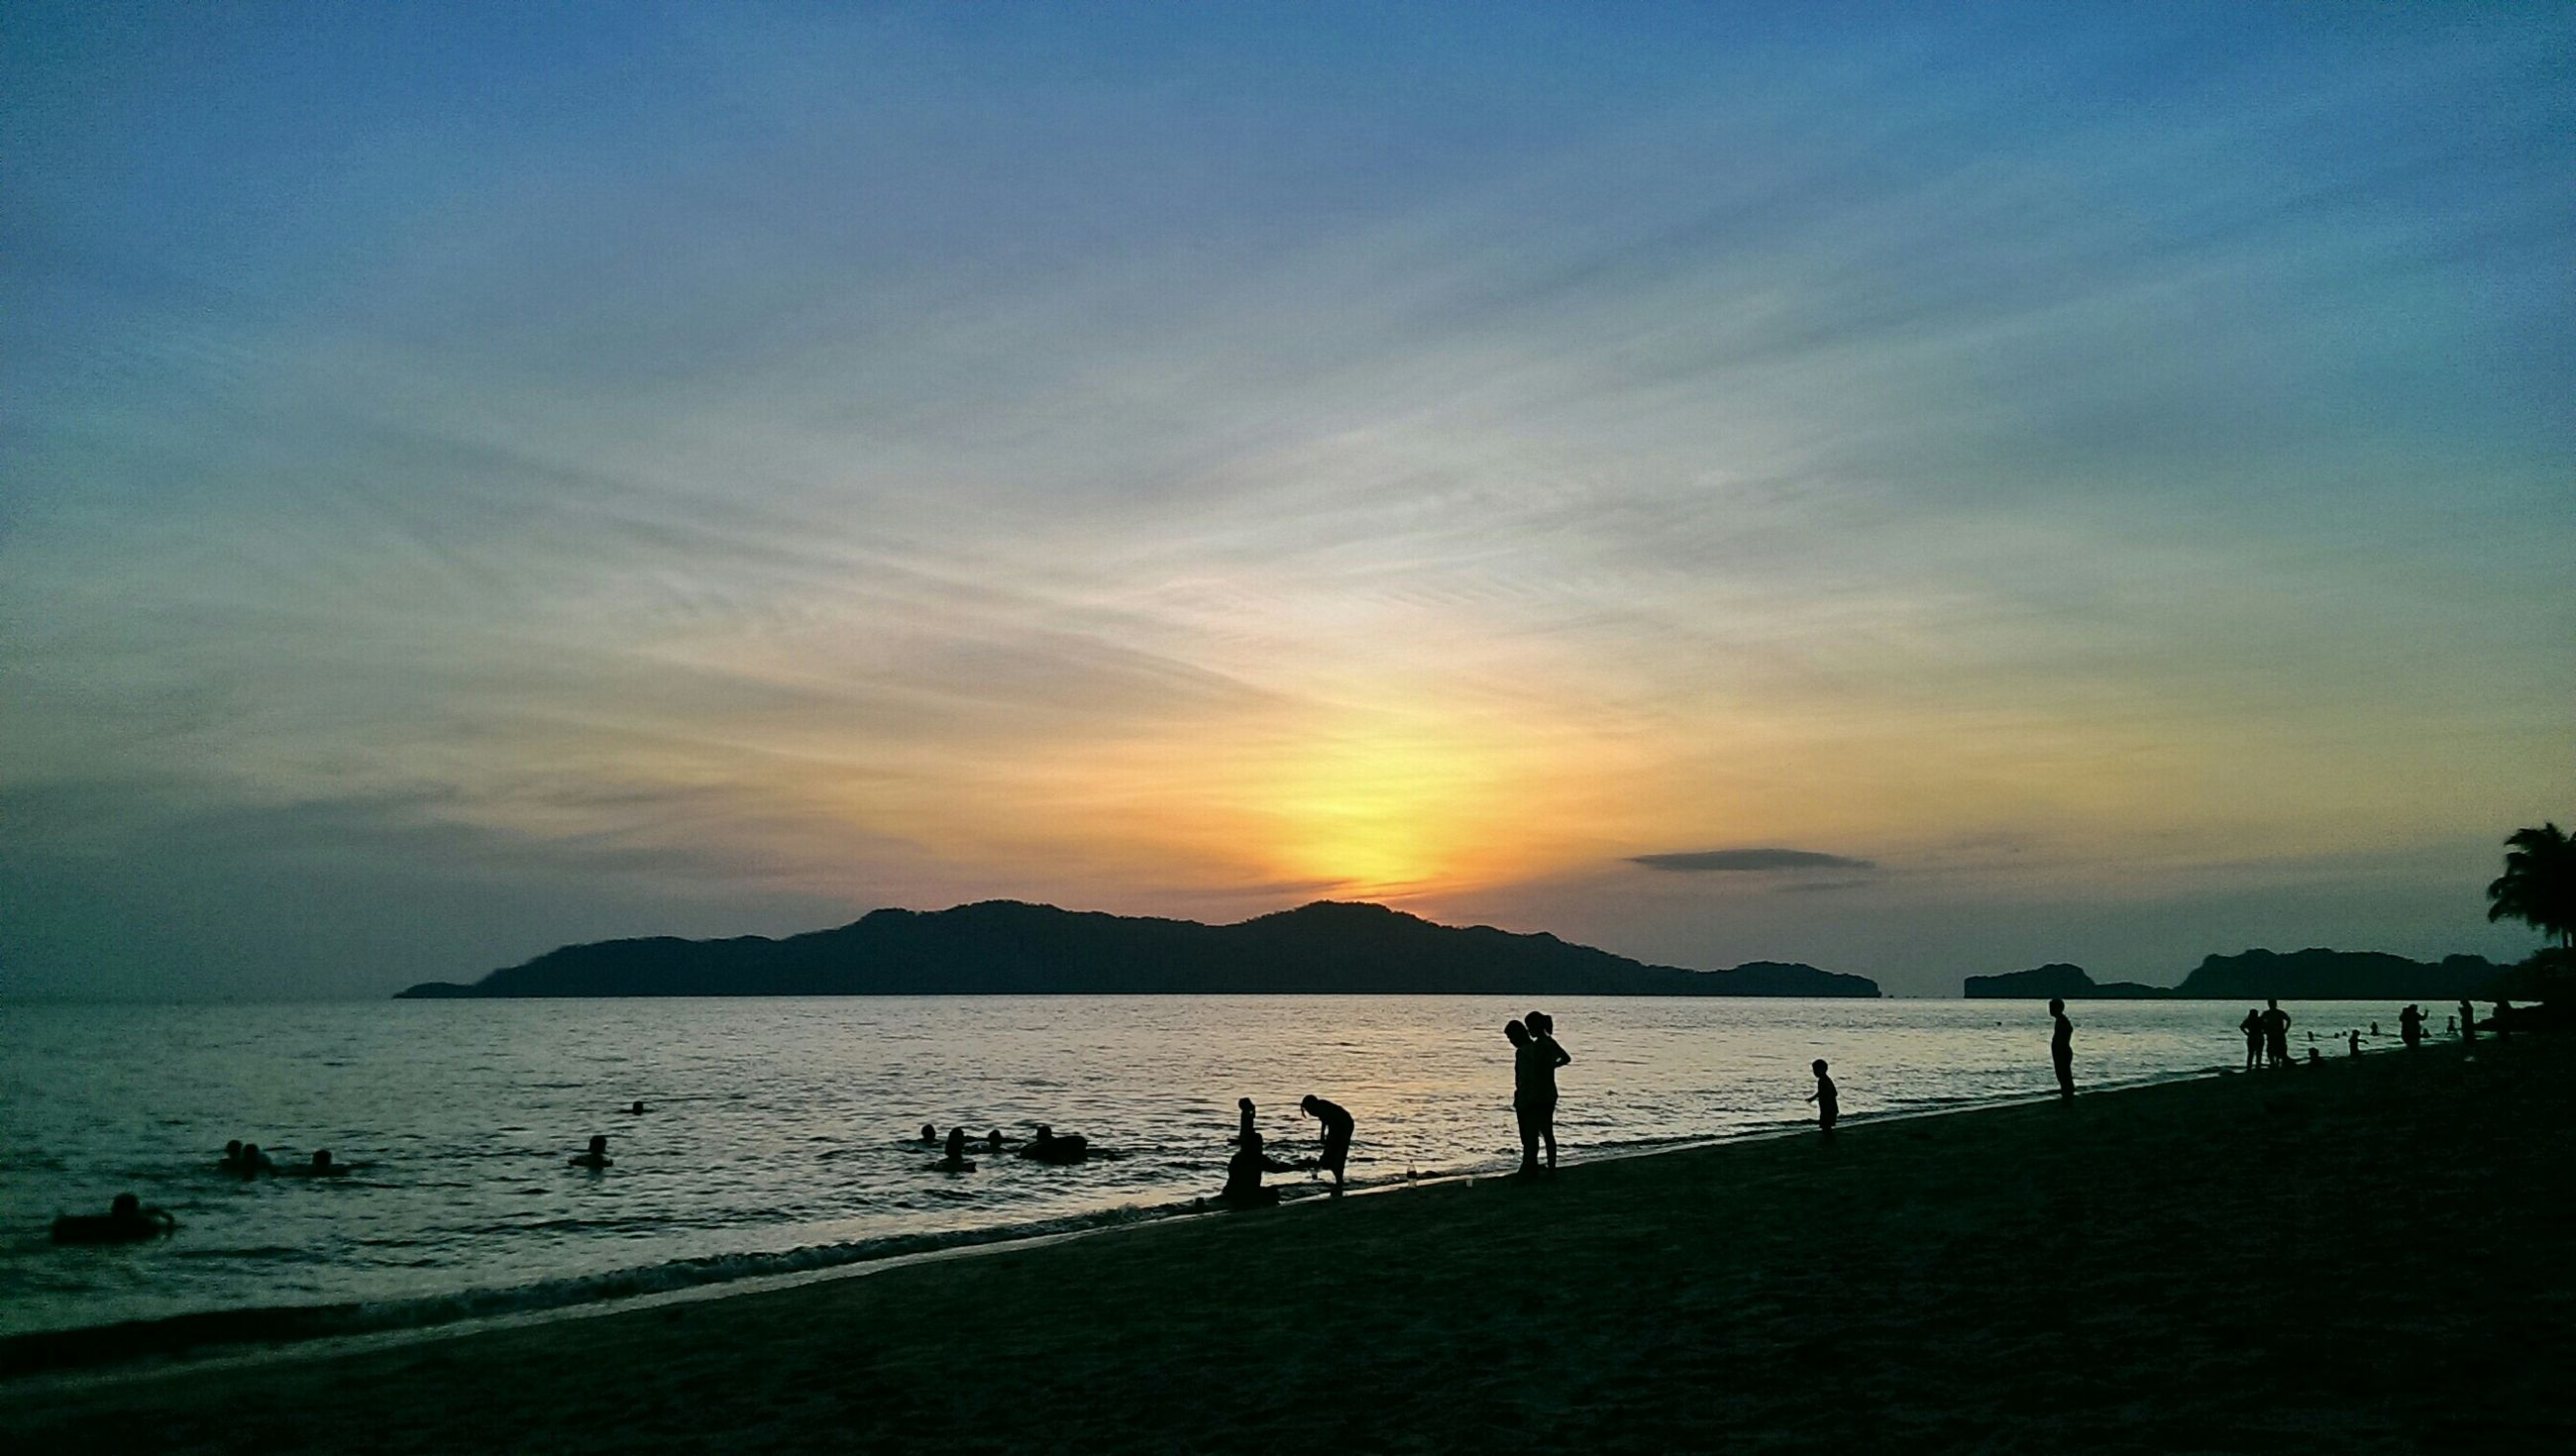 sunset, sea, scenics, water, silhouette, beach, beauty in nature, tranquil scene, sky, tranquility, orange color, shore, nature, mountain, idyllic, cloud - sky, vacations, incidental people, unrecognizable person